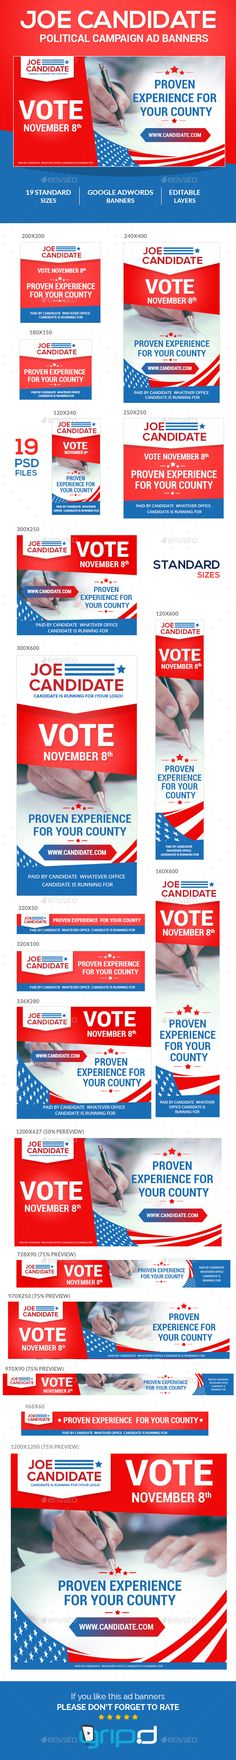 Joe Candidate - Campaign Banner Ads Template PSD